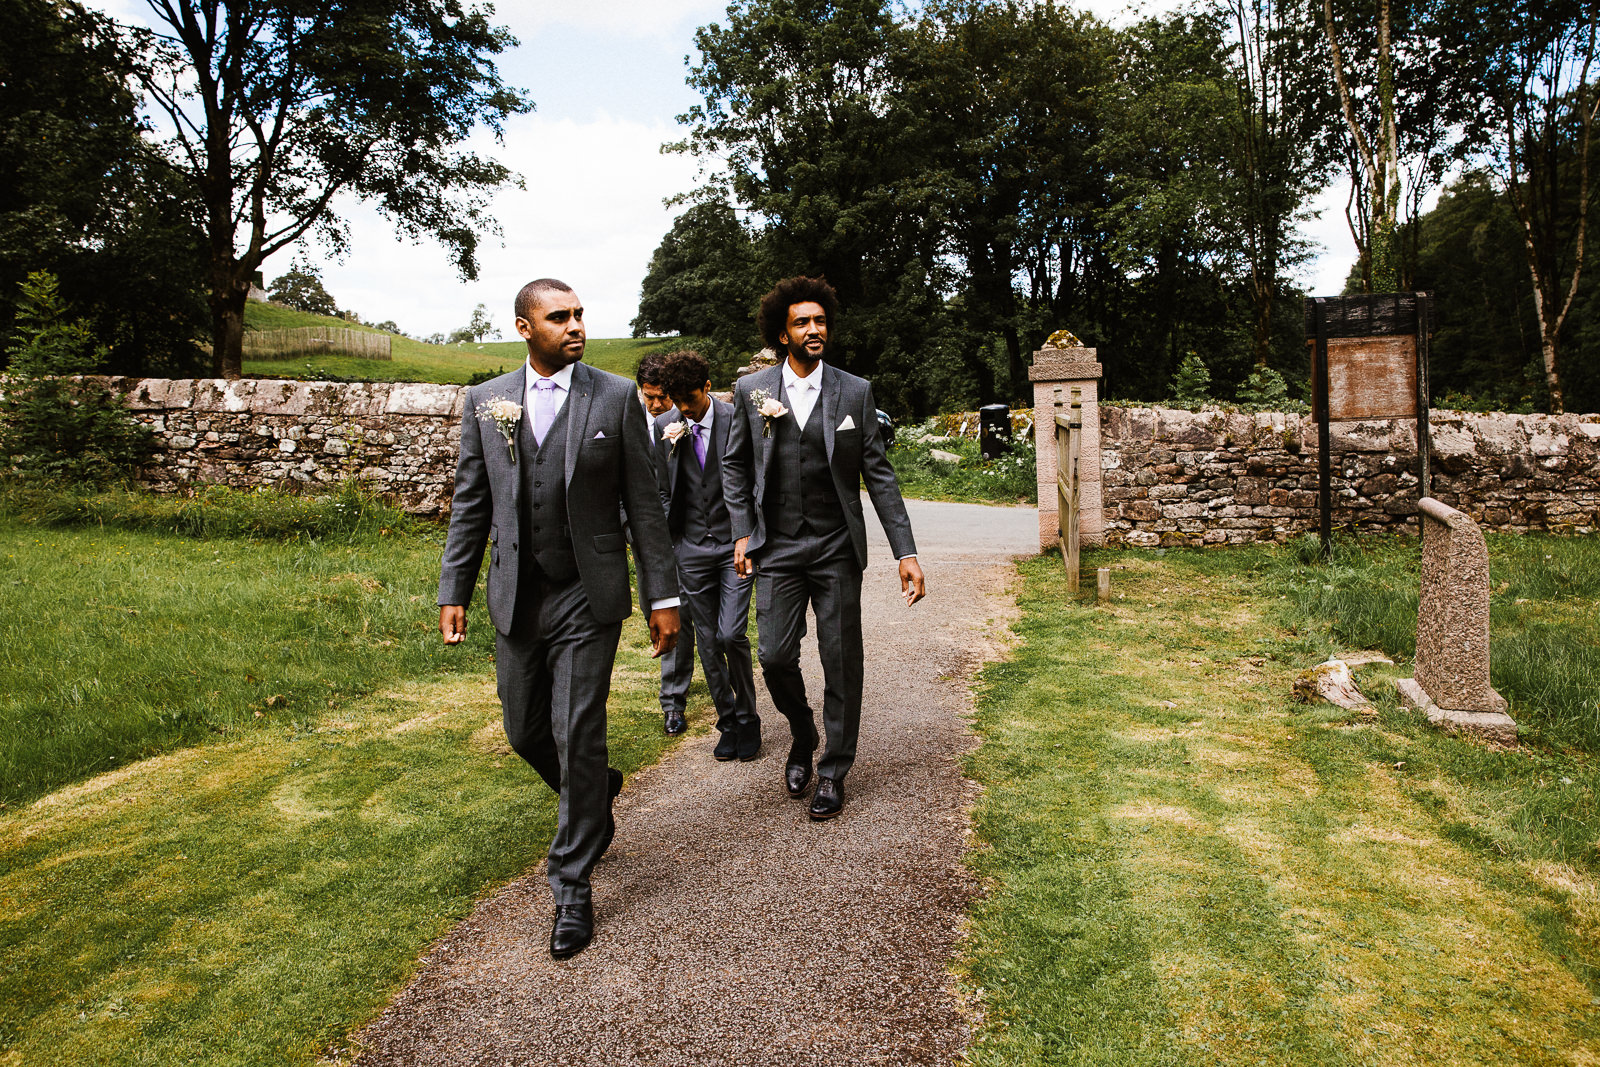 Groom and the boys arriving at church